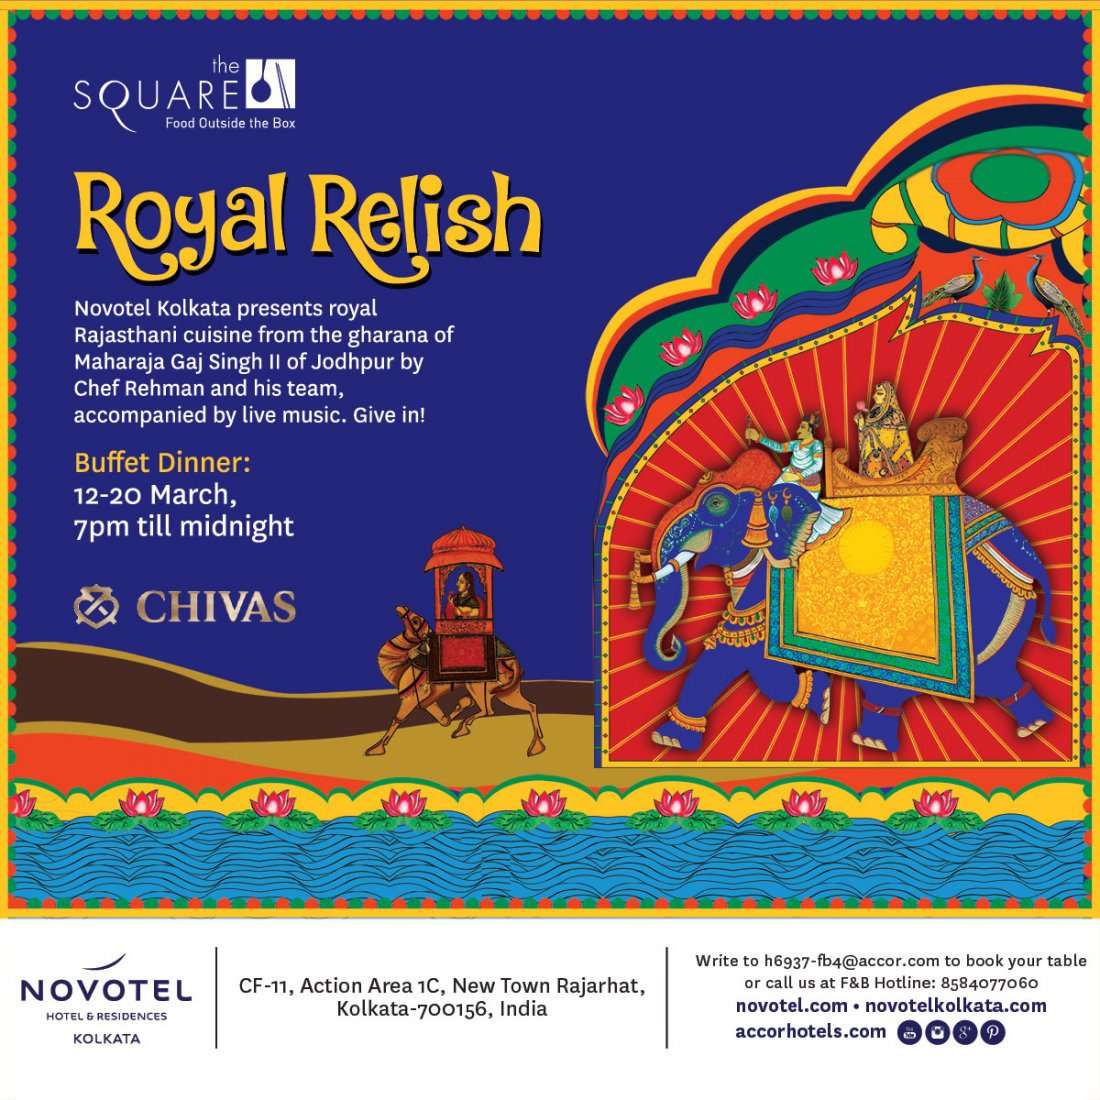 Royal Relish - a Jodhpuri food festival  at The Square, Novotel